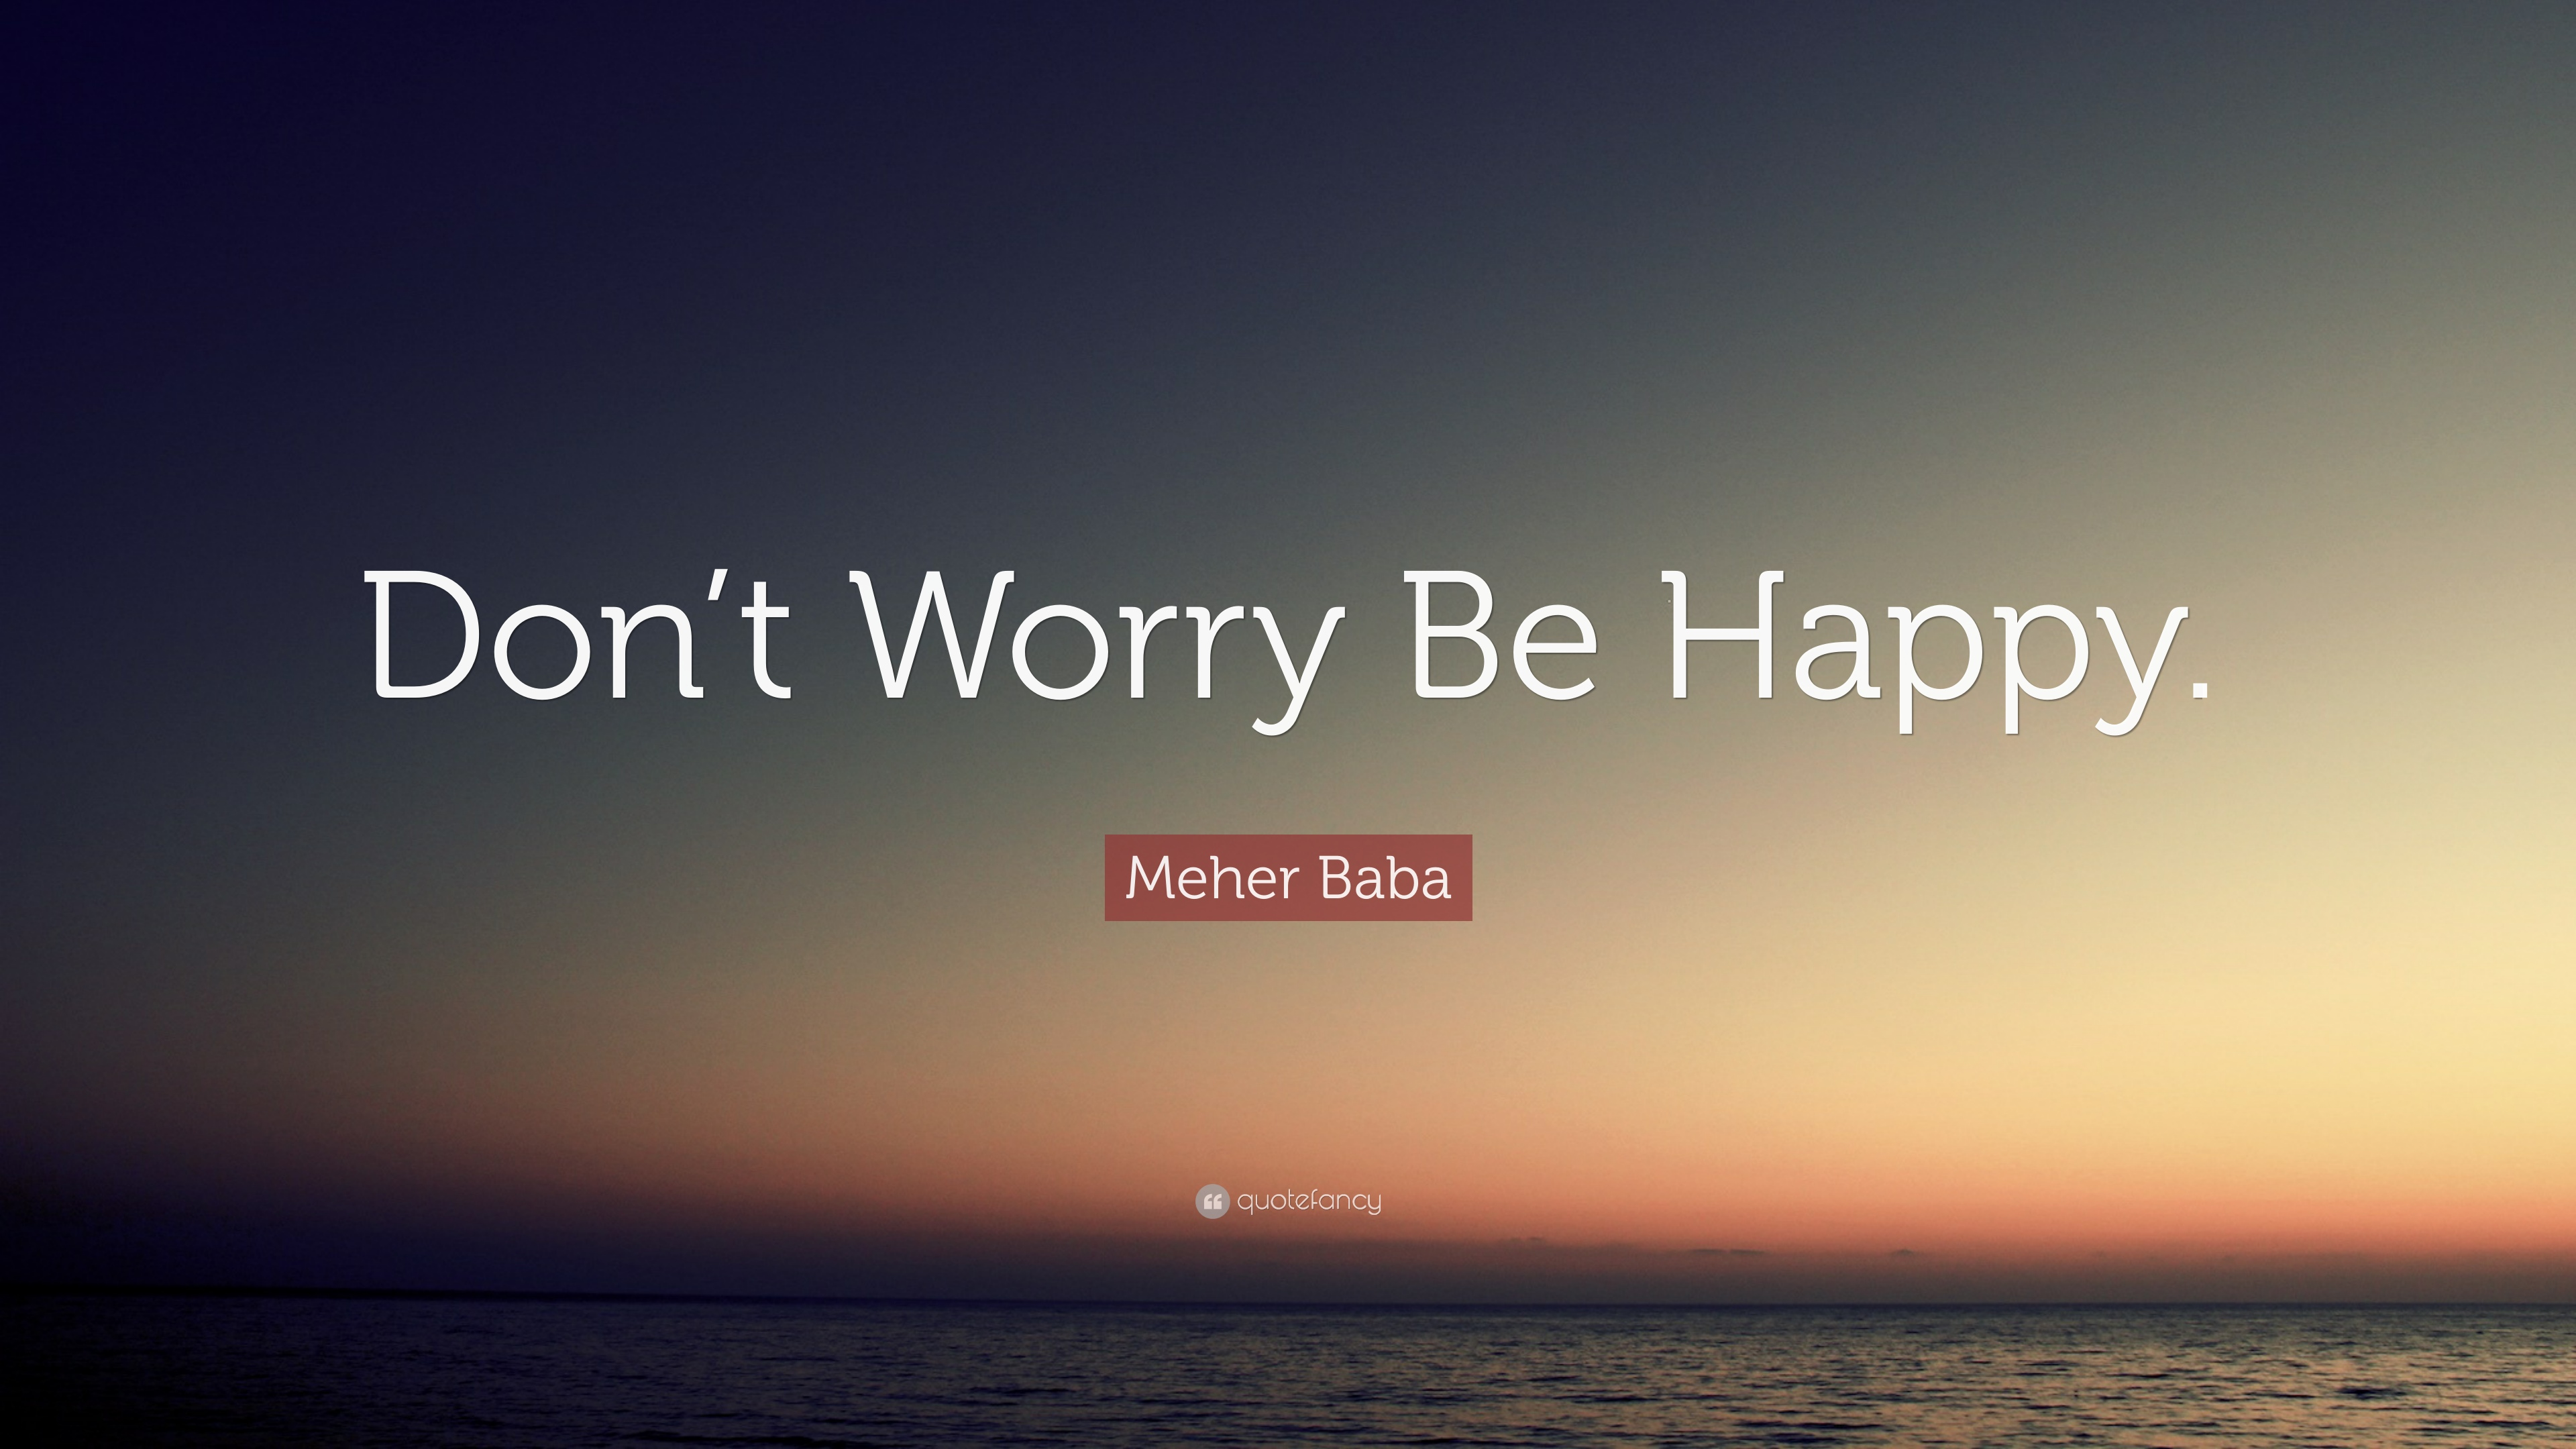 dont worry be happy quotes - photo #26